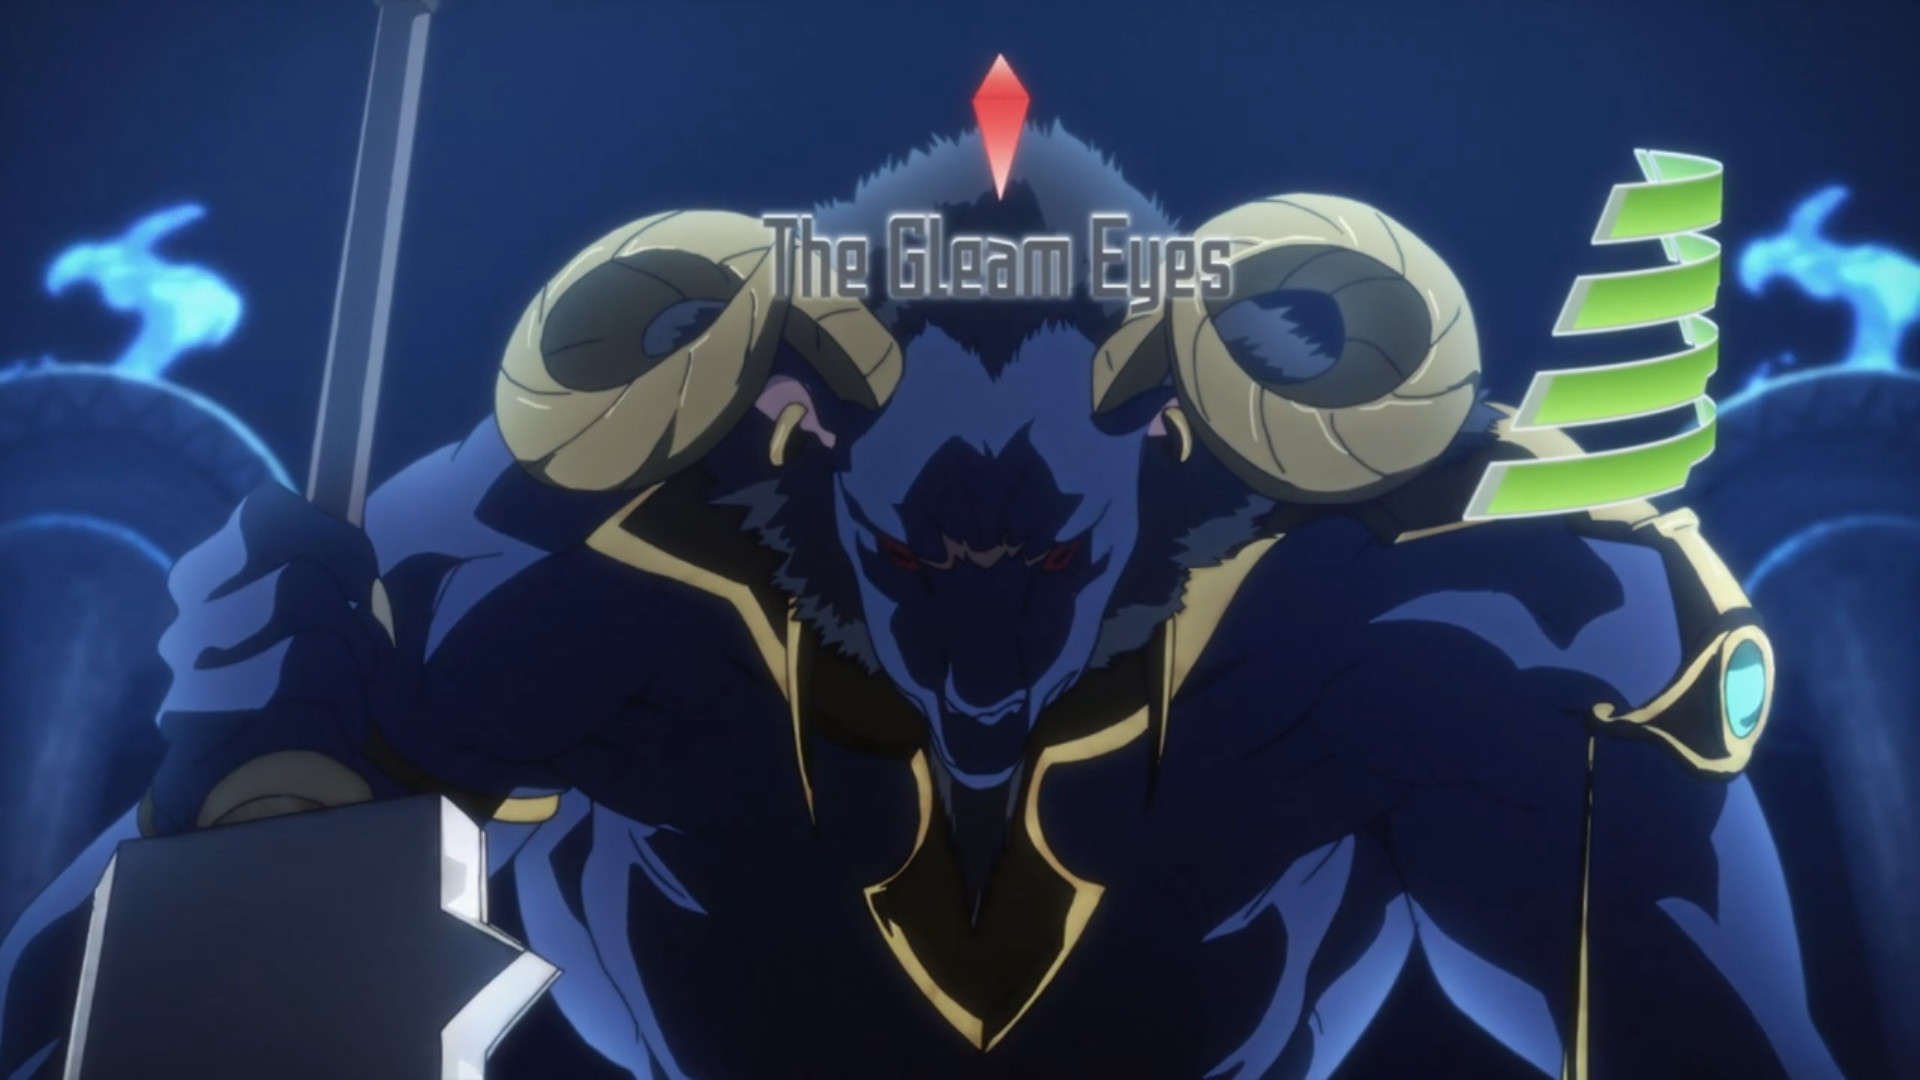 Sword art online episode 8 the glorio blog for Floor 100 boss sao